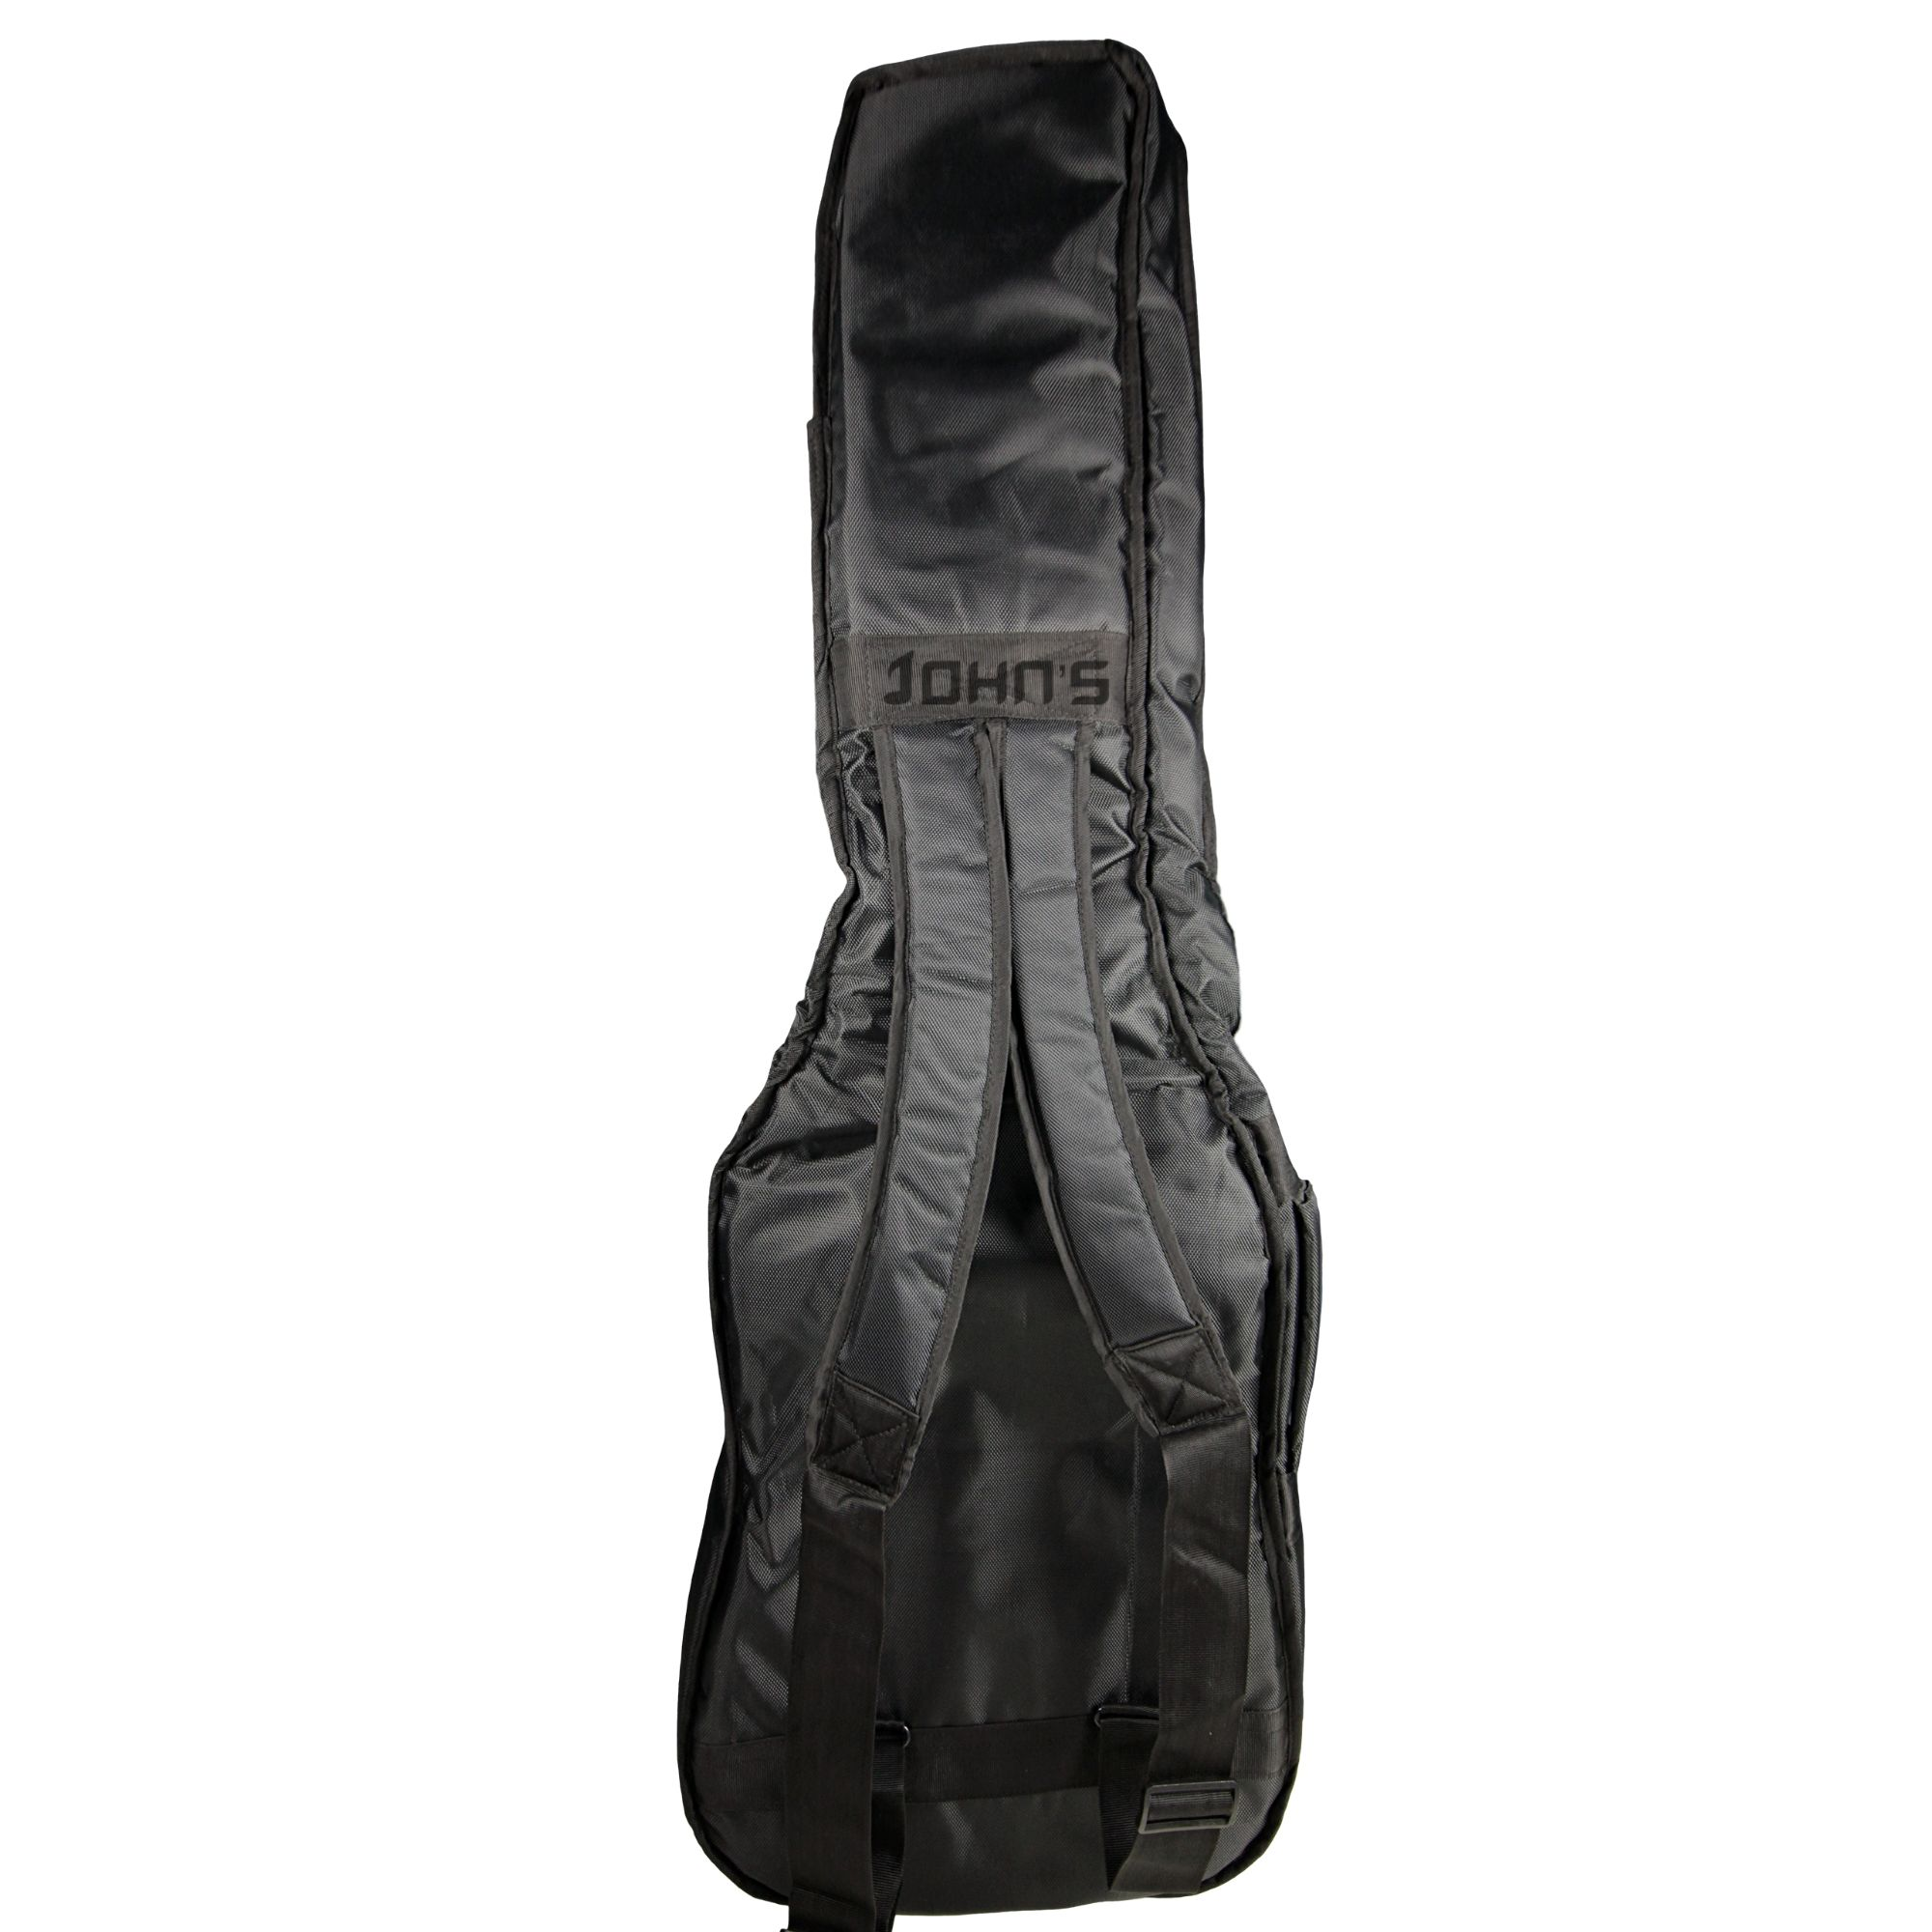 Buy Heavy Duty Bass Guitar Bag online in India